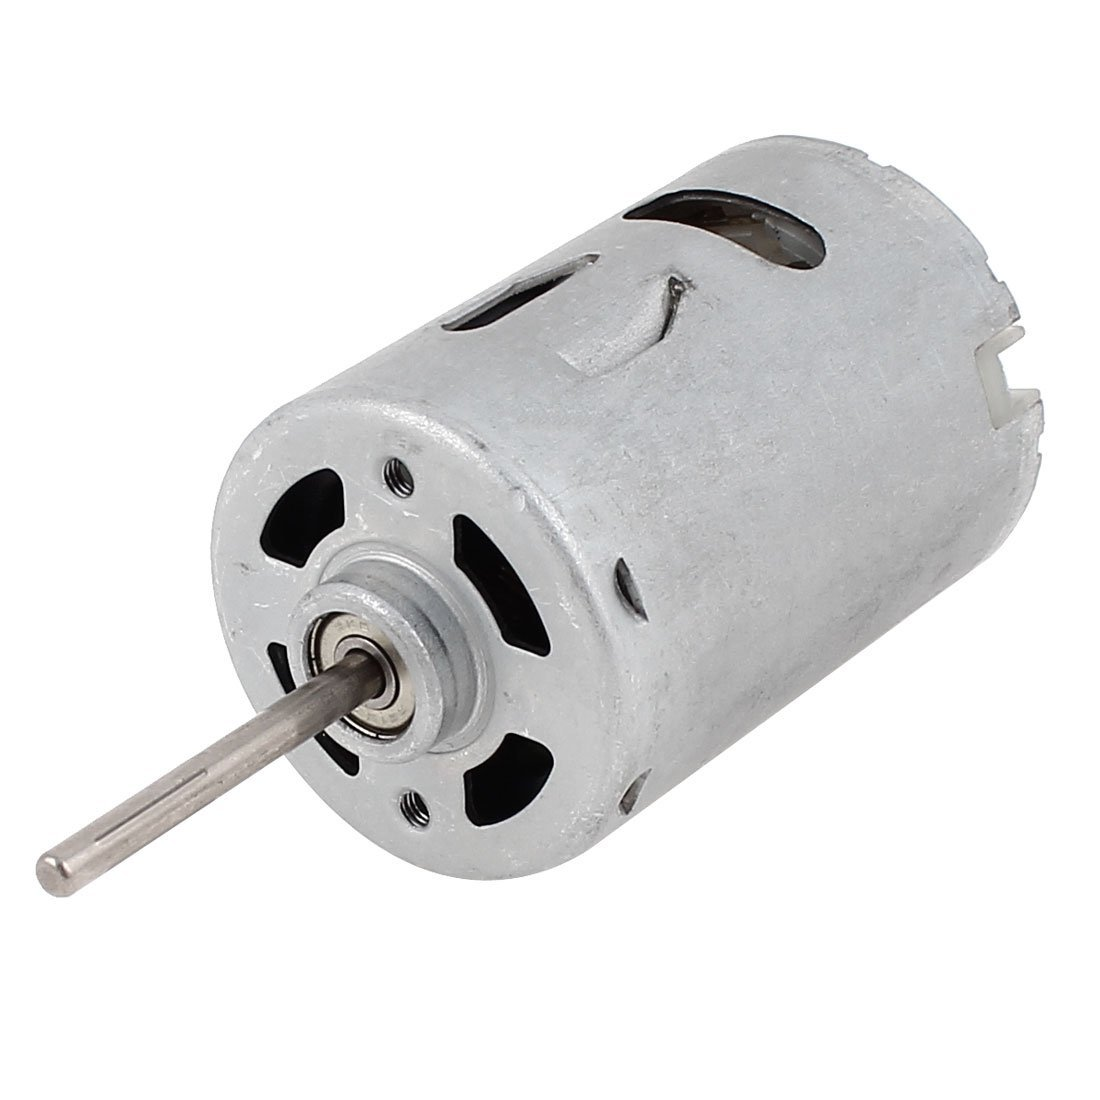 6V - 12V, 13000 RPM - 26000 RPM high torque motor S.C. R / C for helicopter boat